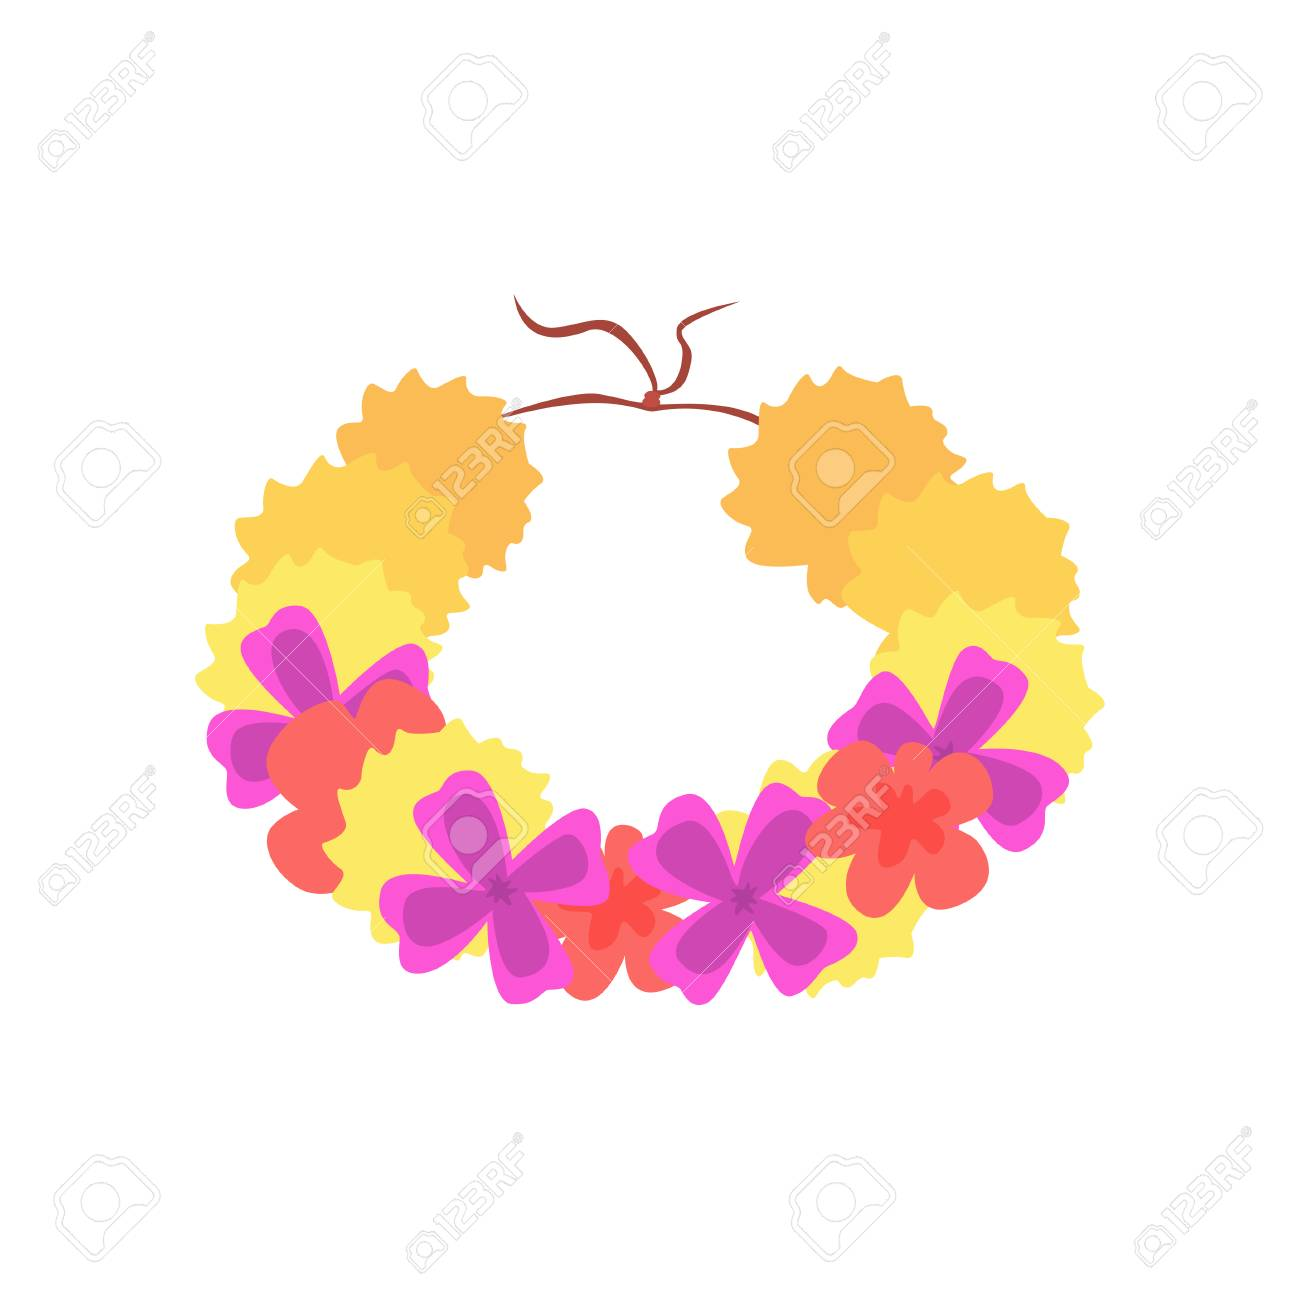 Hawaiian lei with bright colorful flowers traditional necklace hawaiian lei with bright colorful flowers traditional necklace cartoon vector illustration stock vector 89888000 izmirmasajfo